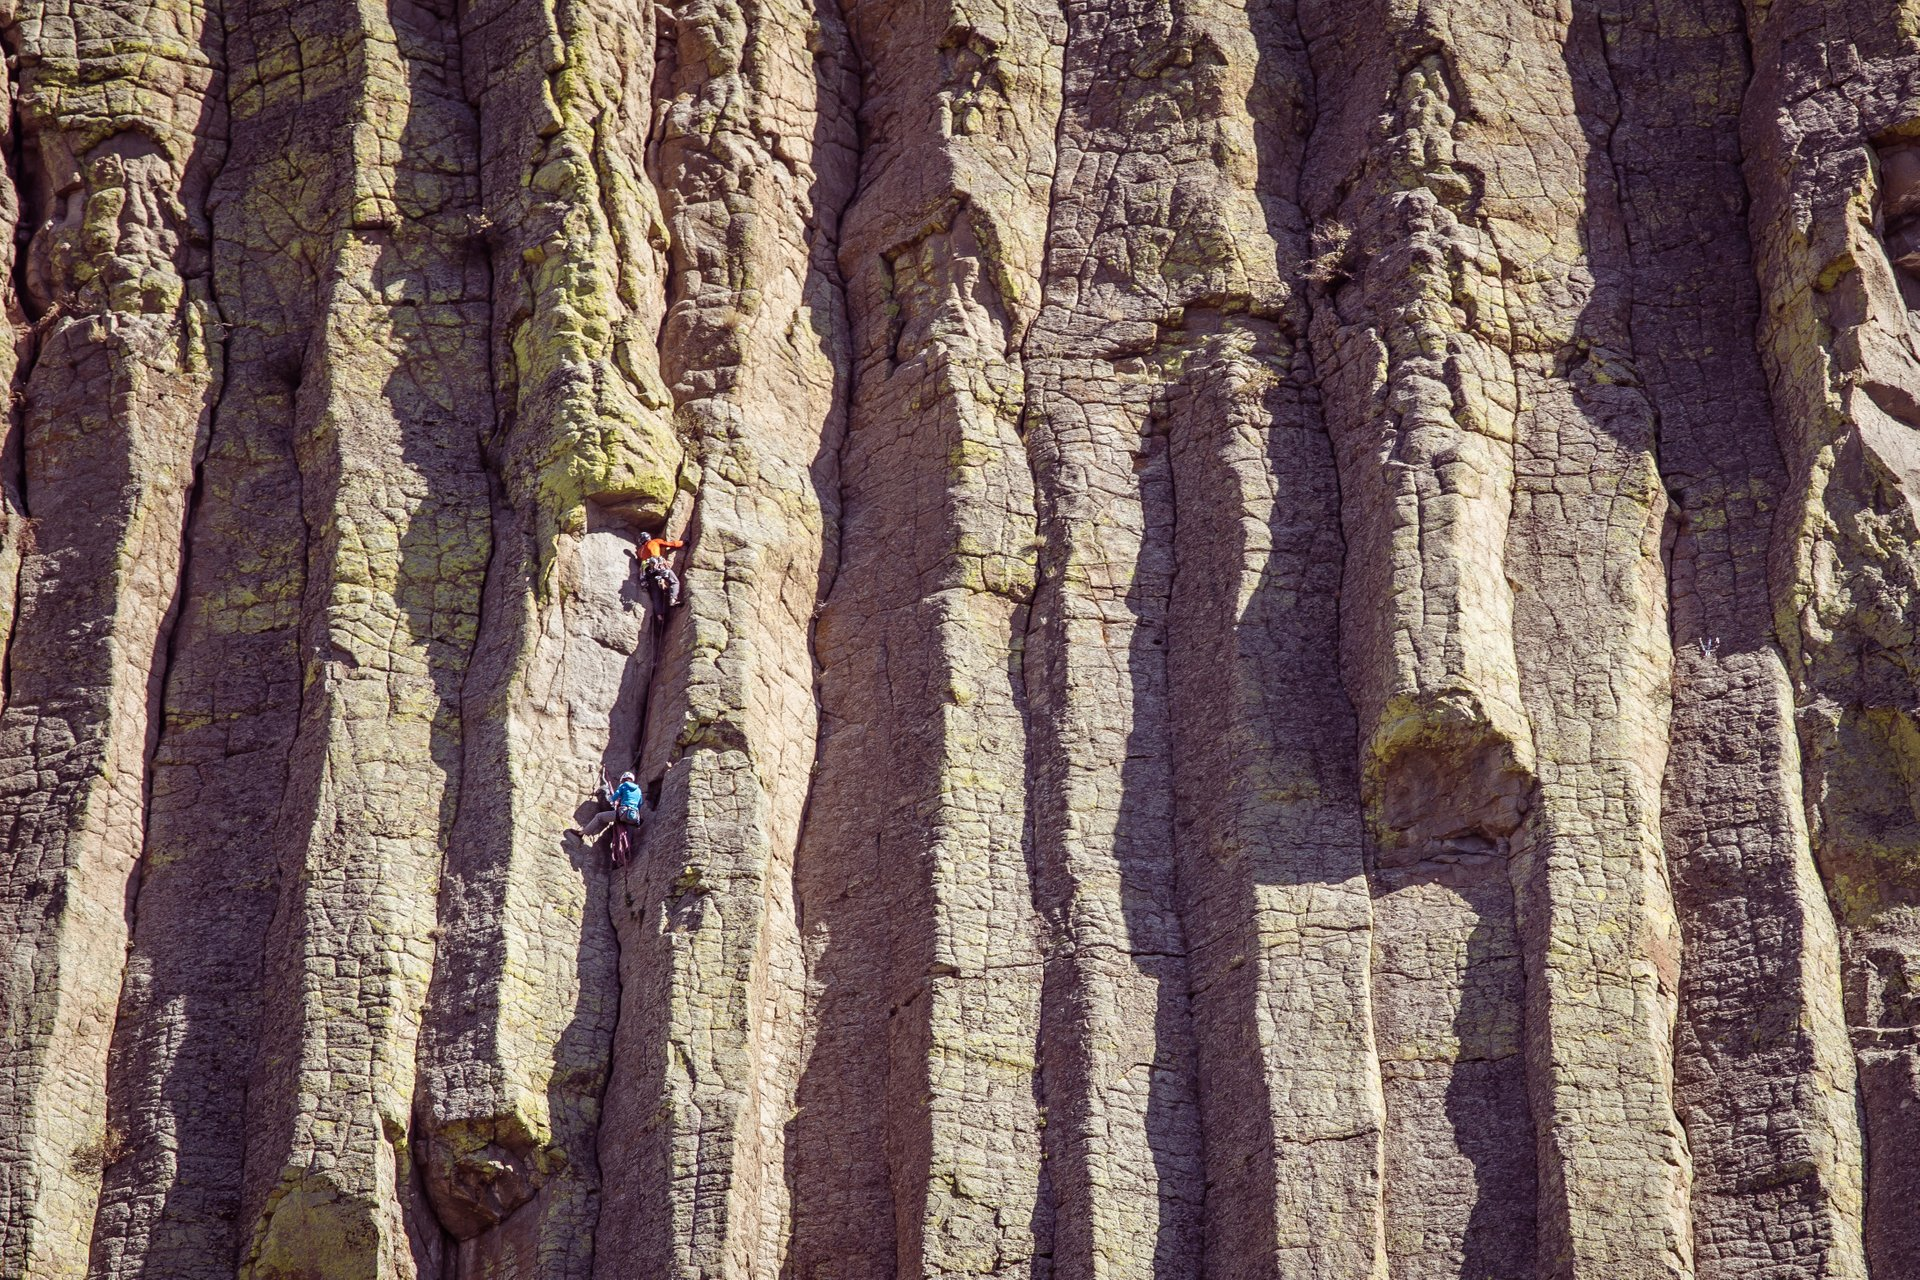 Rock Climbing at Devils Tower National Monument, Wyoming 2020